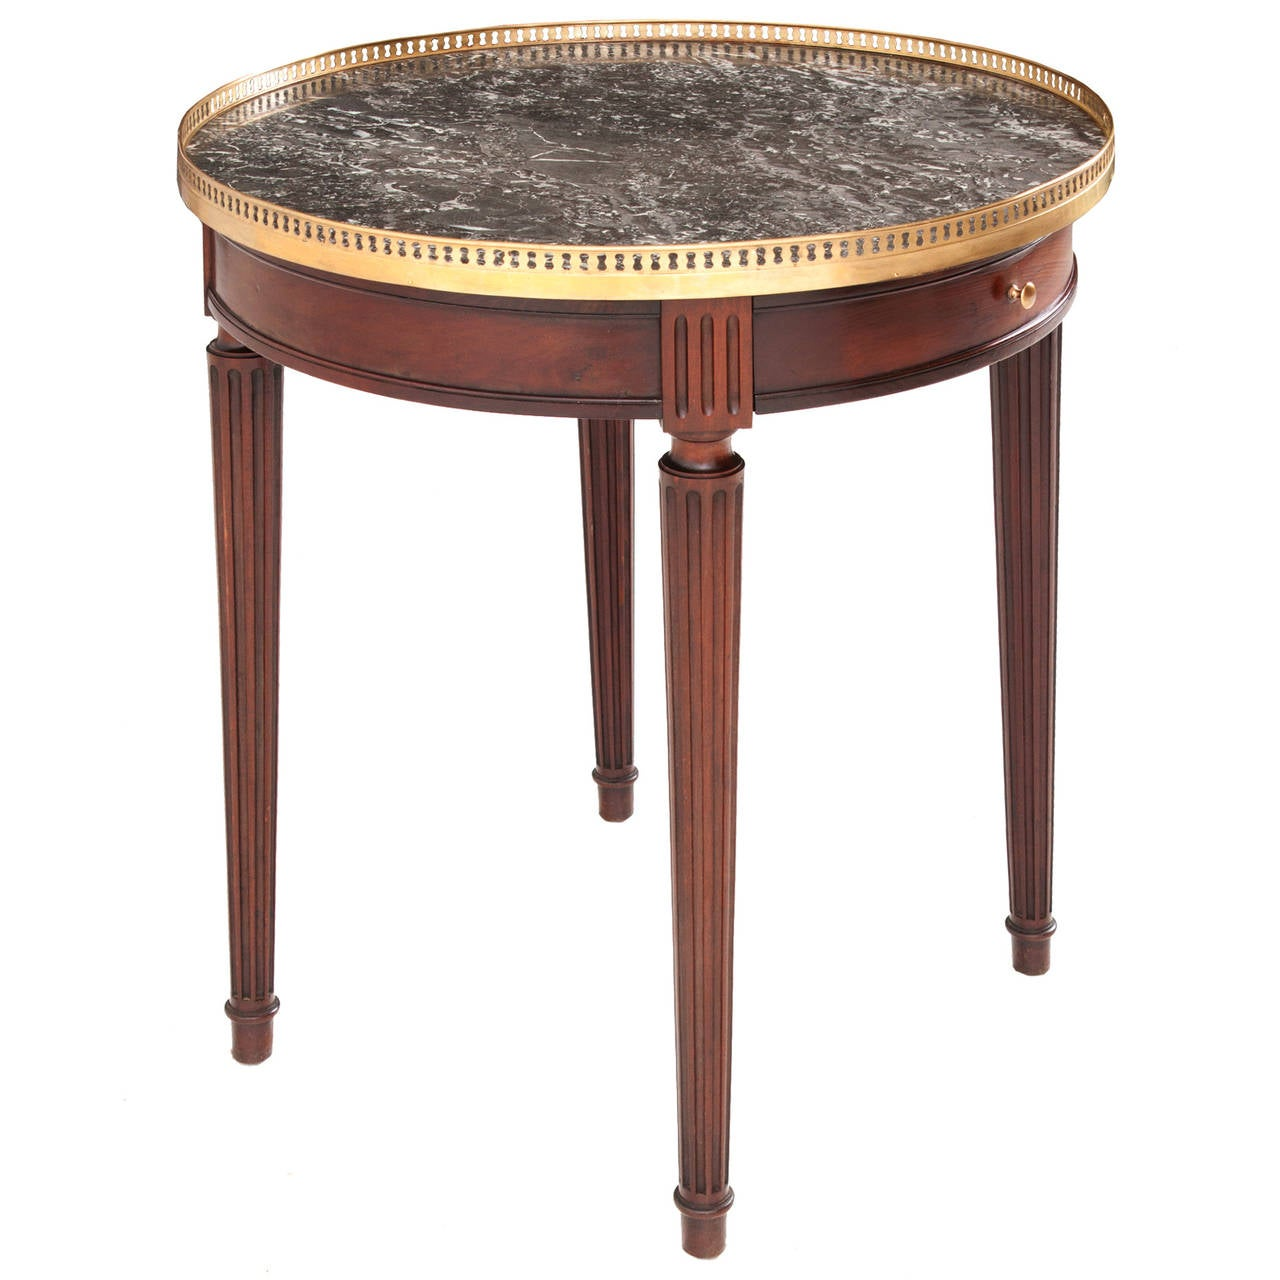 Gueridon Table French 19th Century Louis Xvi Gueridon Table At 1stdibs